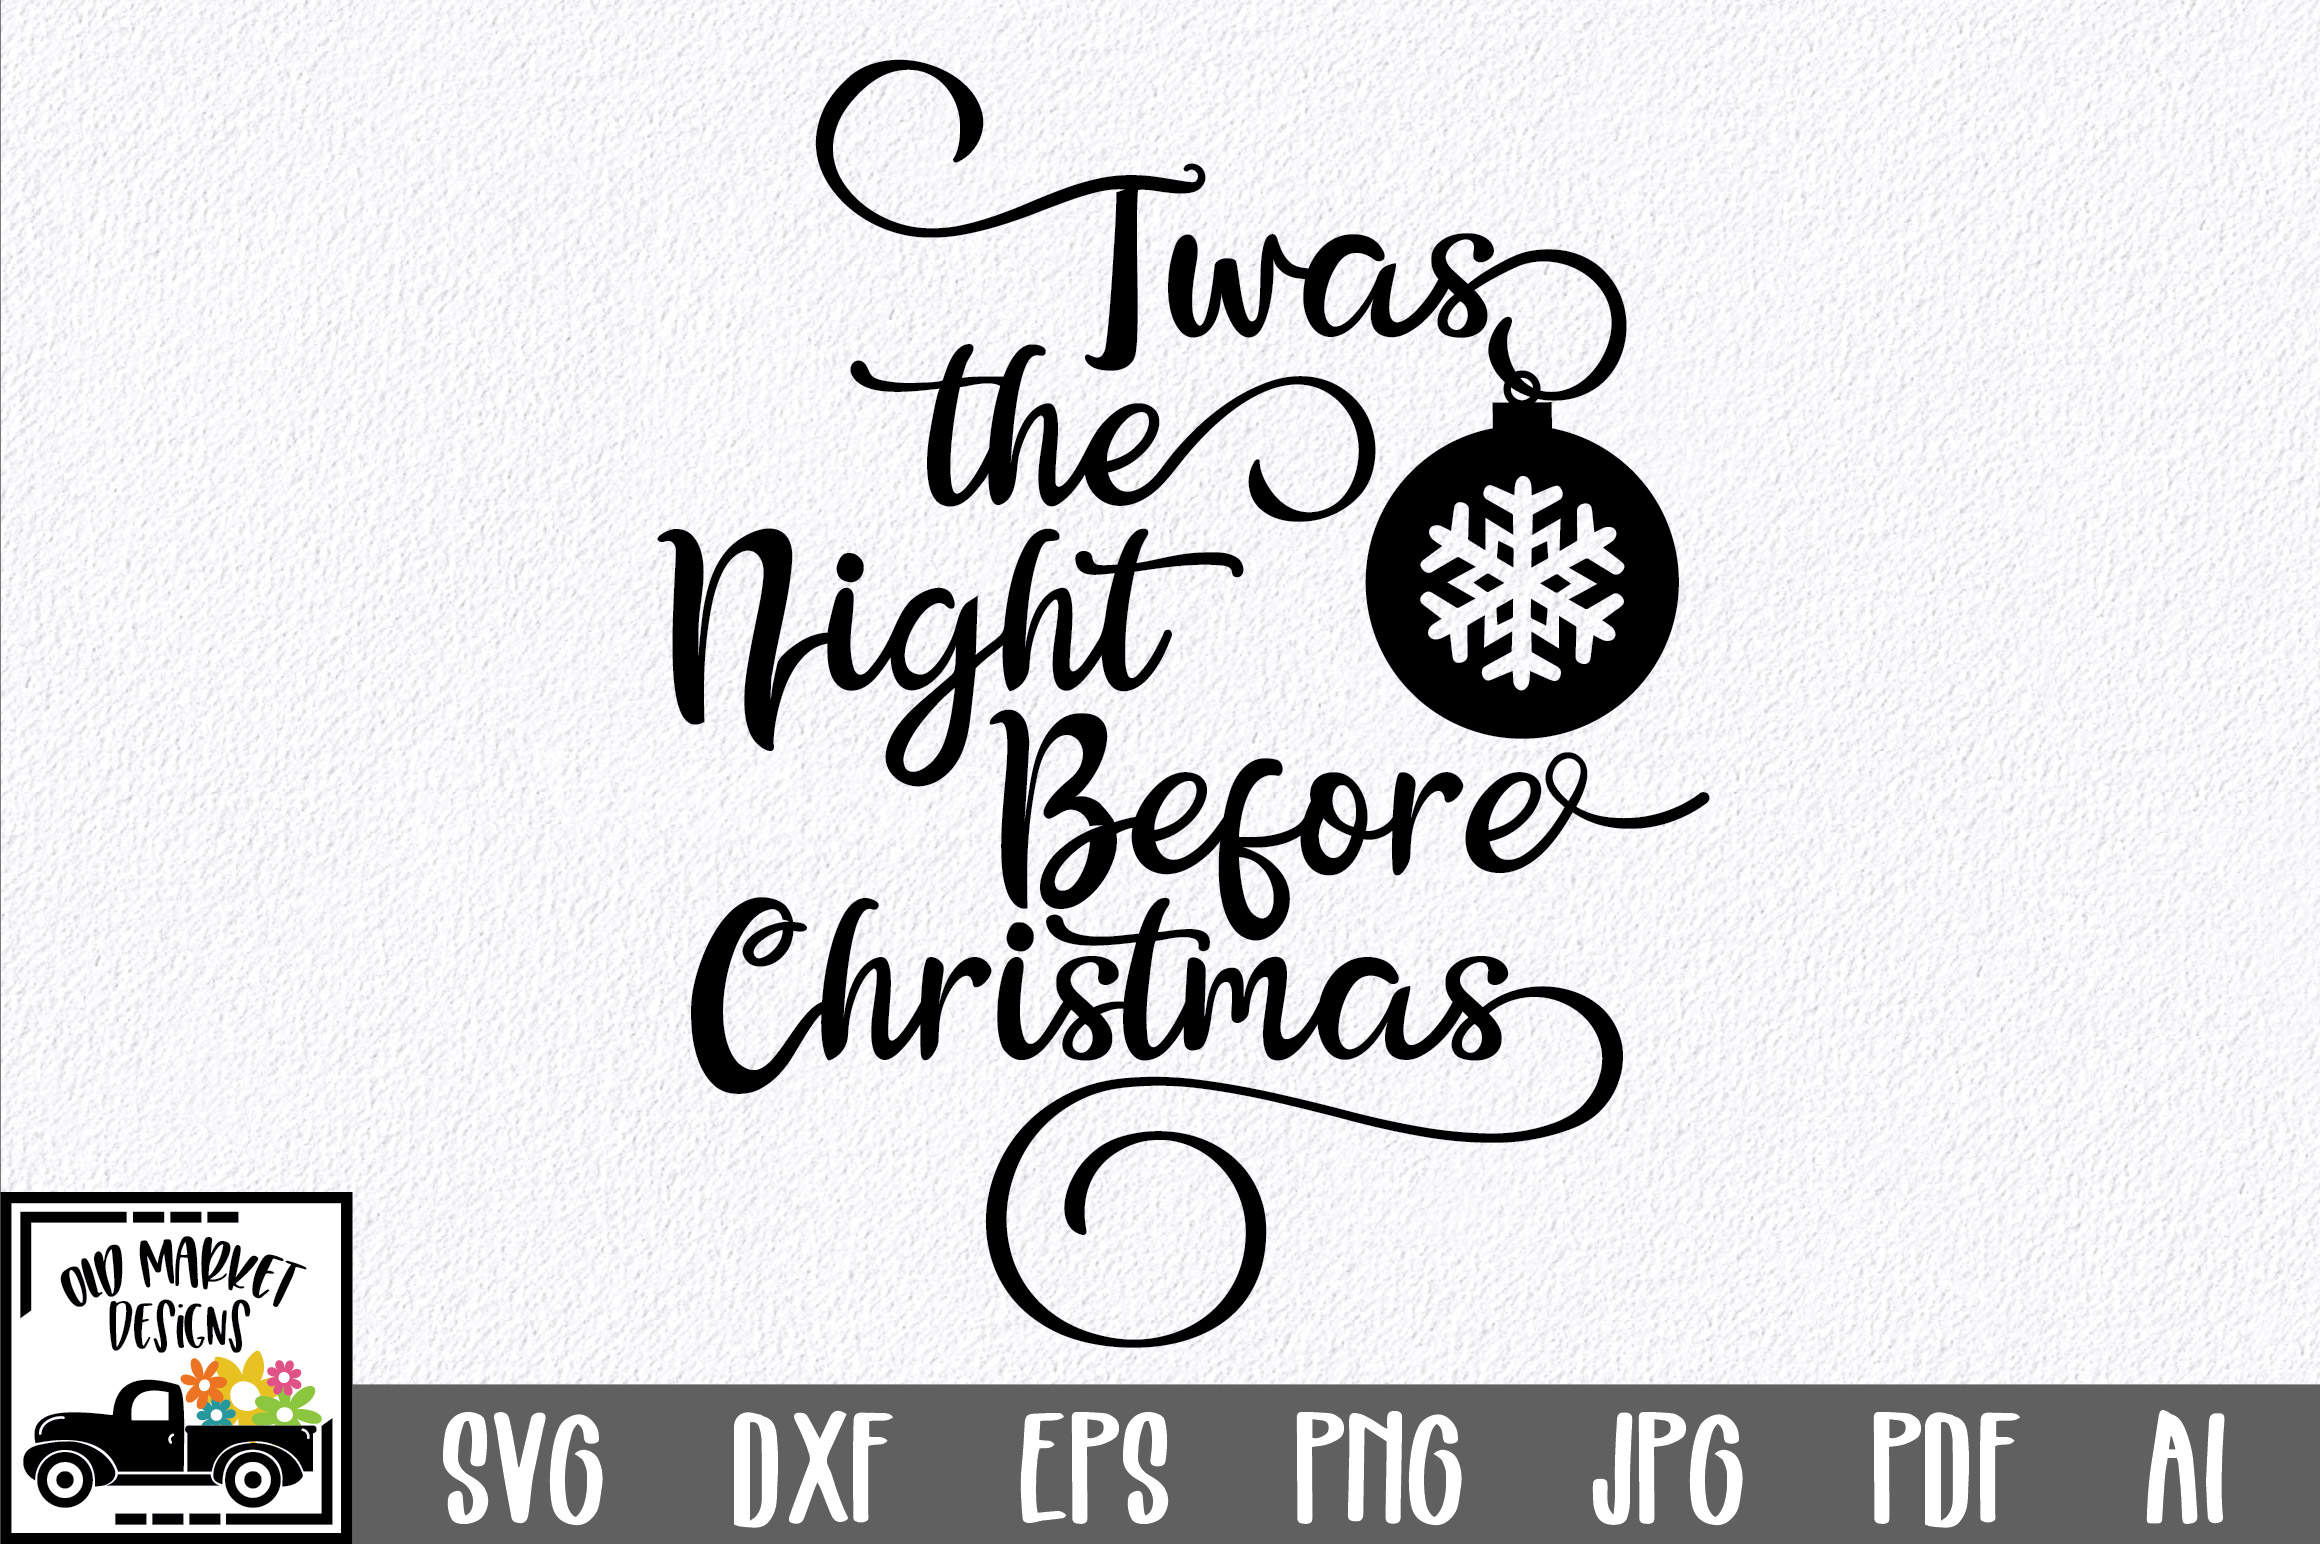 Download Free The Night Before Christmas Svg Graphic By Oldmarketdesigns for Cricut Explore, Silhouette and other cutting machines.